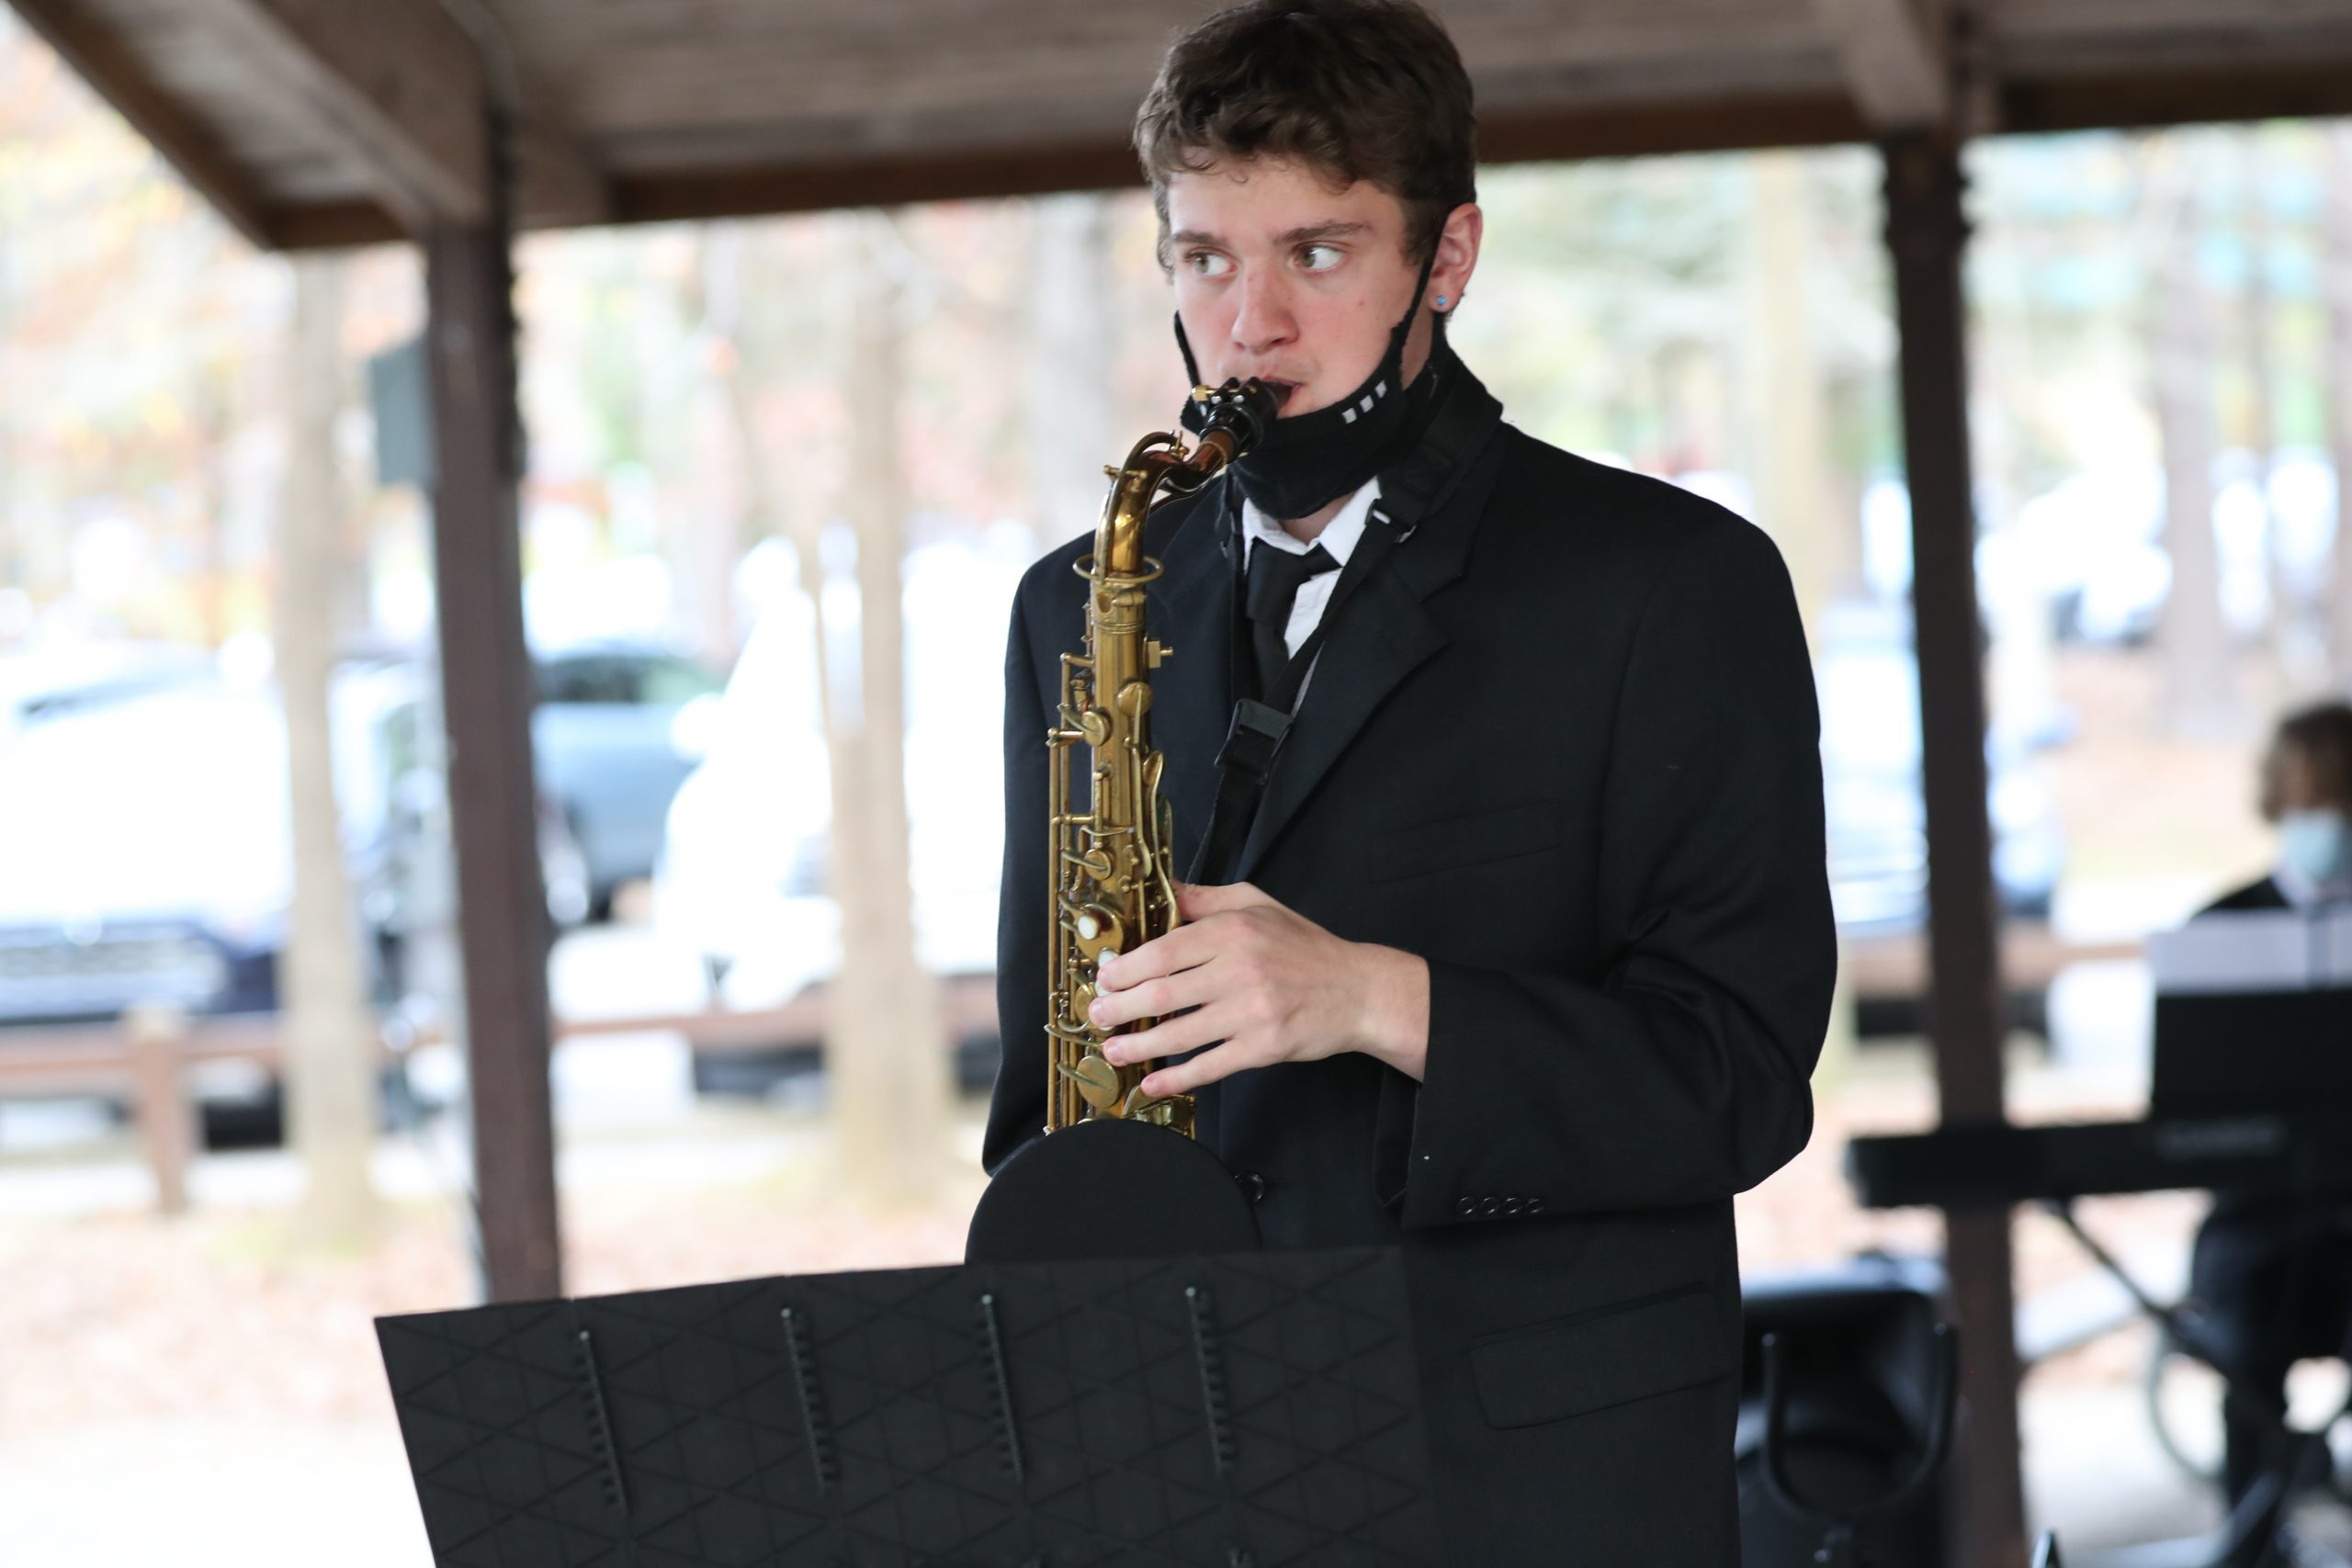 Image of Joseph Foglia playing saxophone